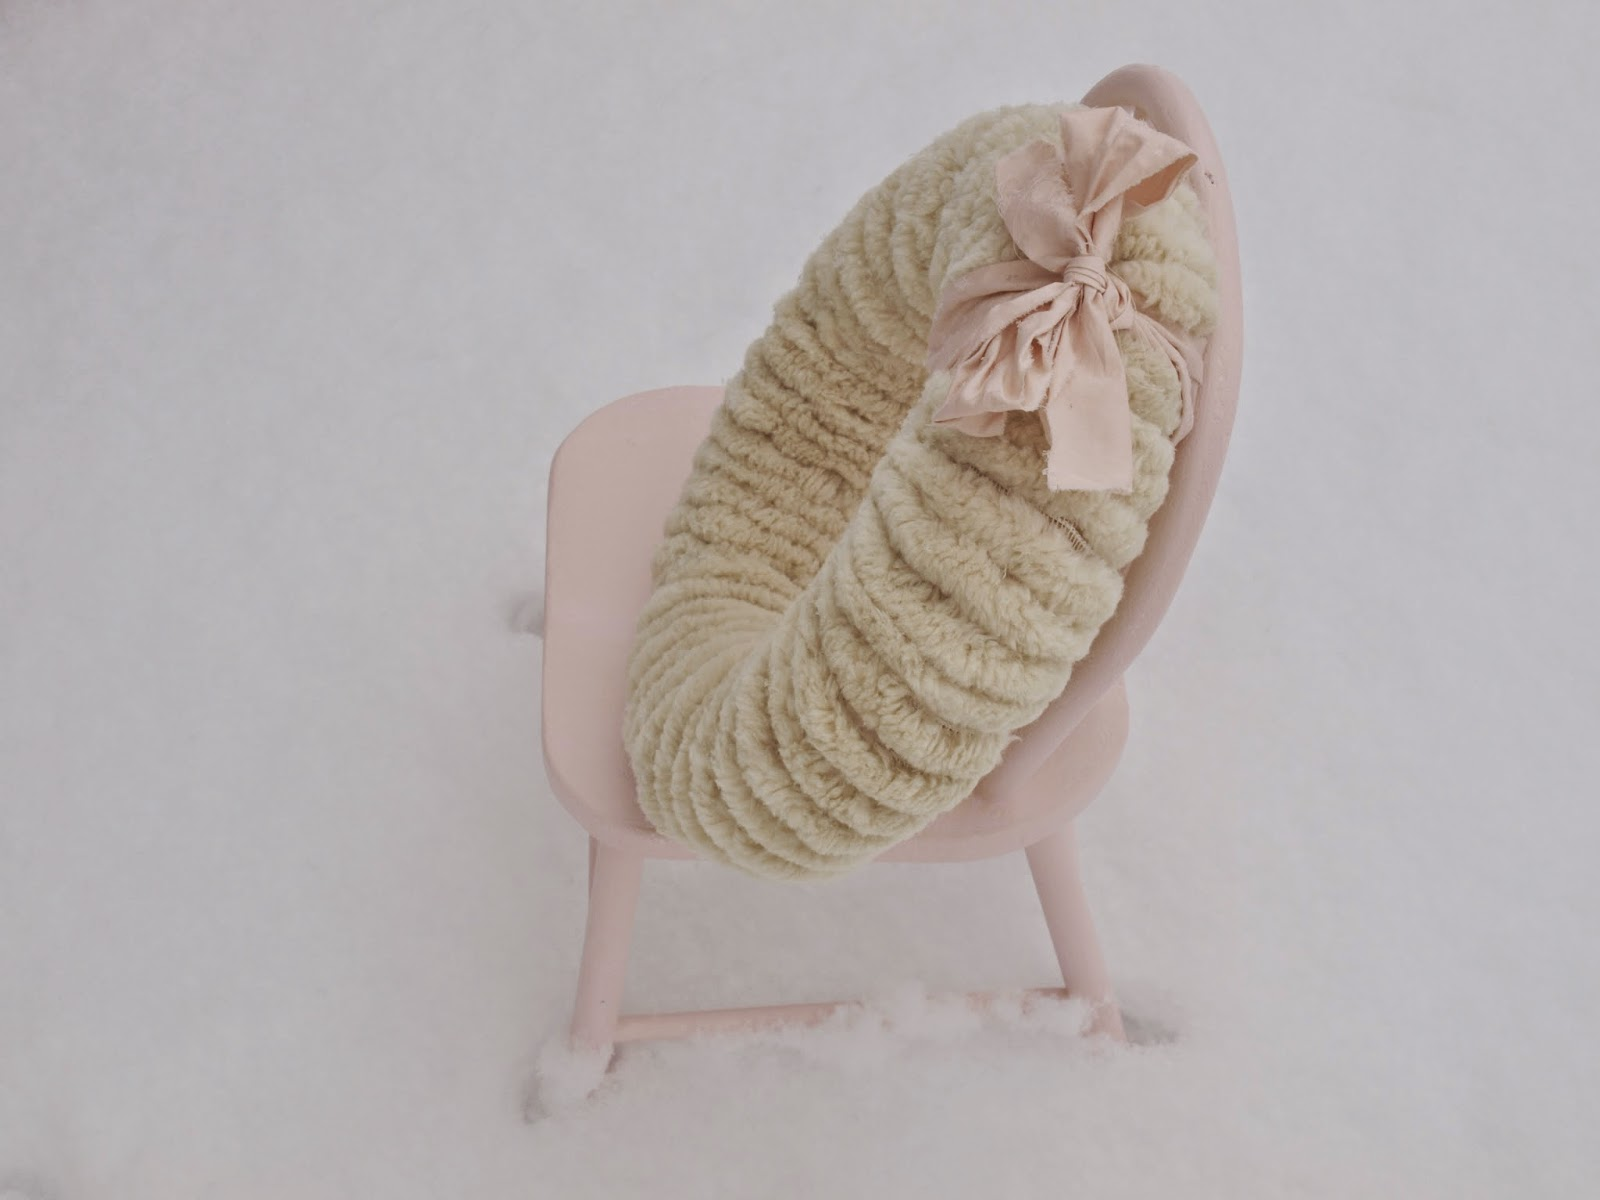 hello-lovely-studio-wooly-pom-pom-wreath-pink-chair-snow